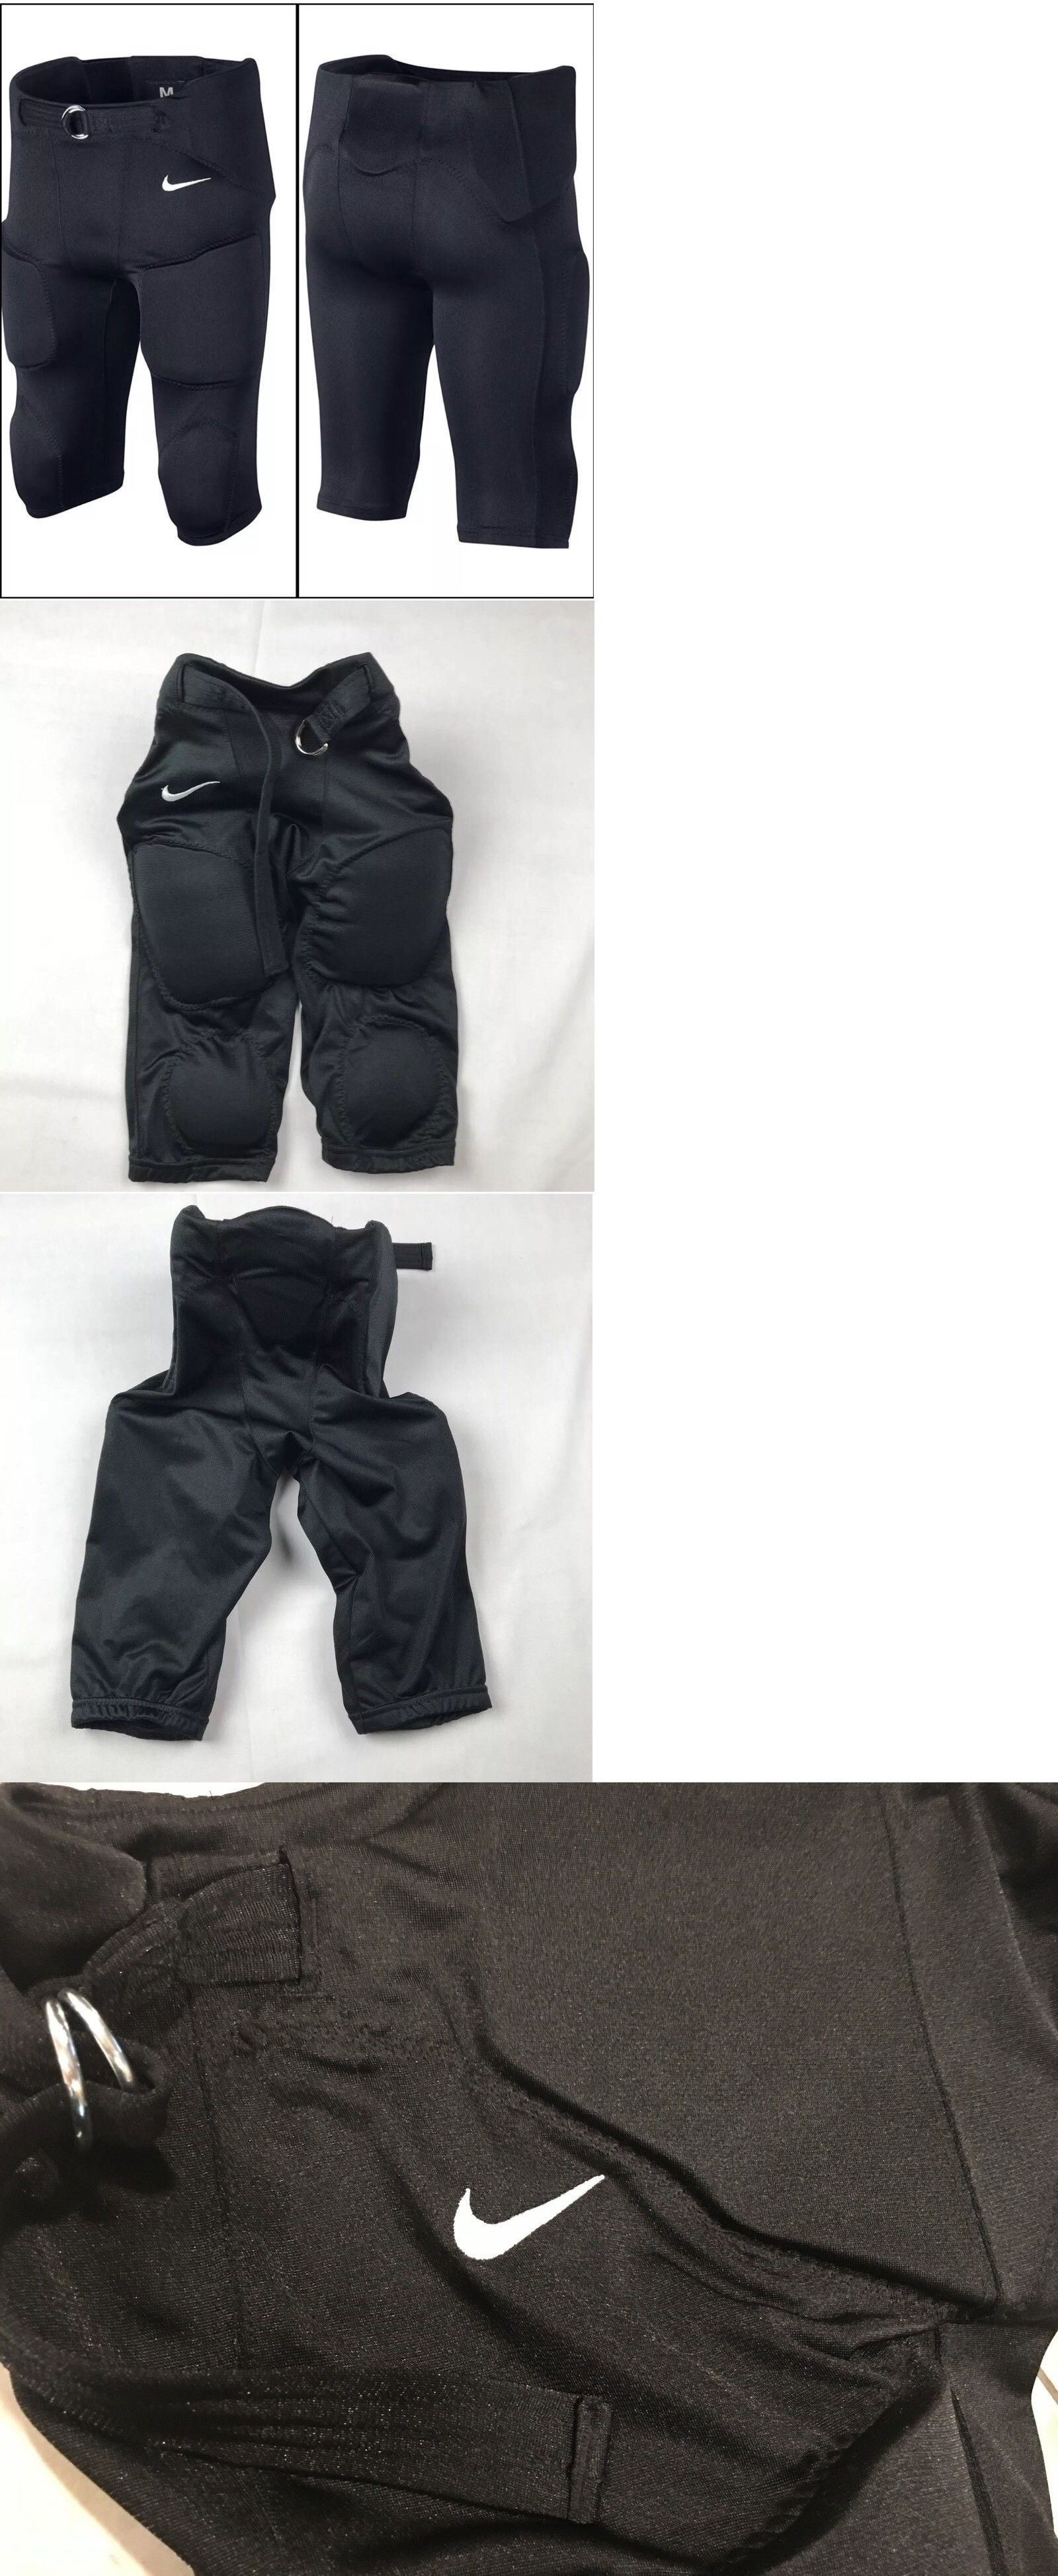 d23daccbd0f6 Clothing 21218  Black Nike Youth Recruit Integrated 2.0 Padded Football  Pants Boys Size M